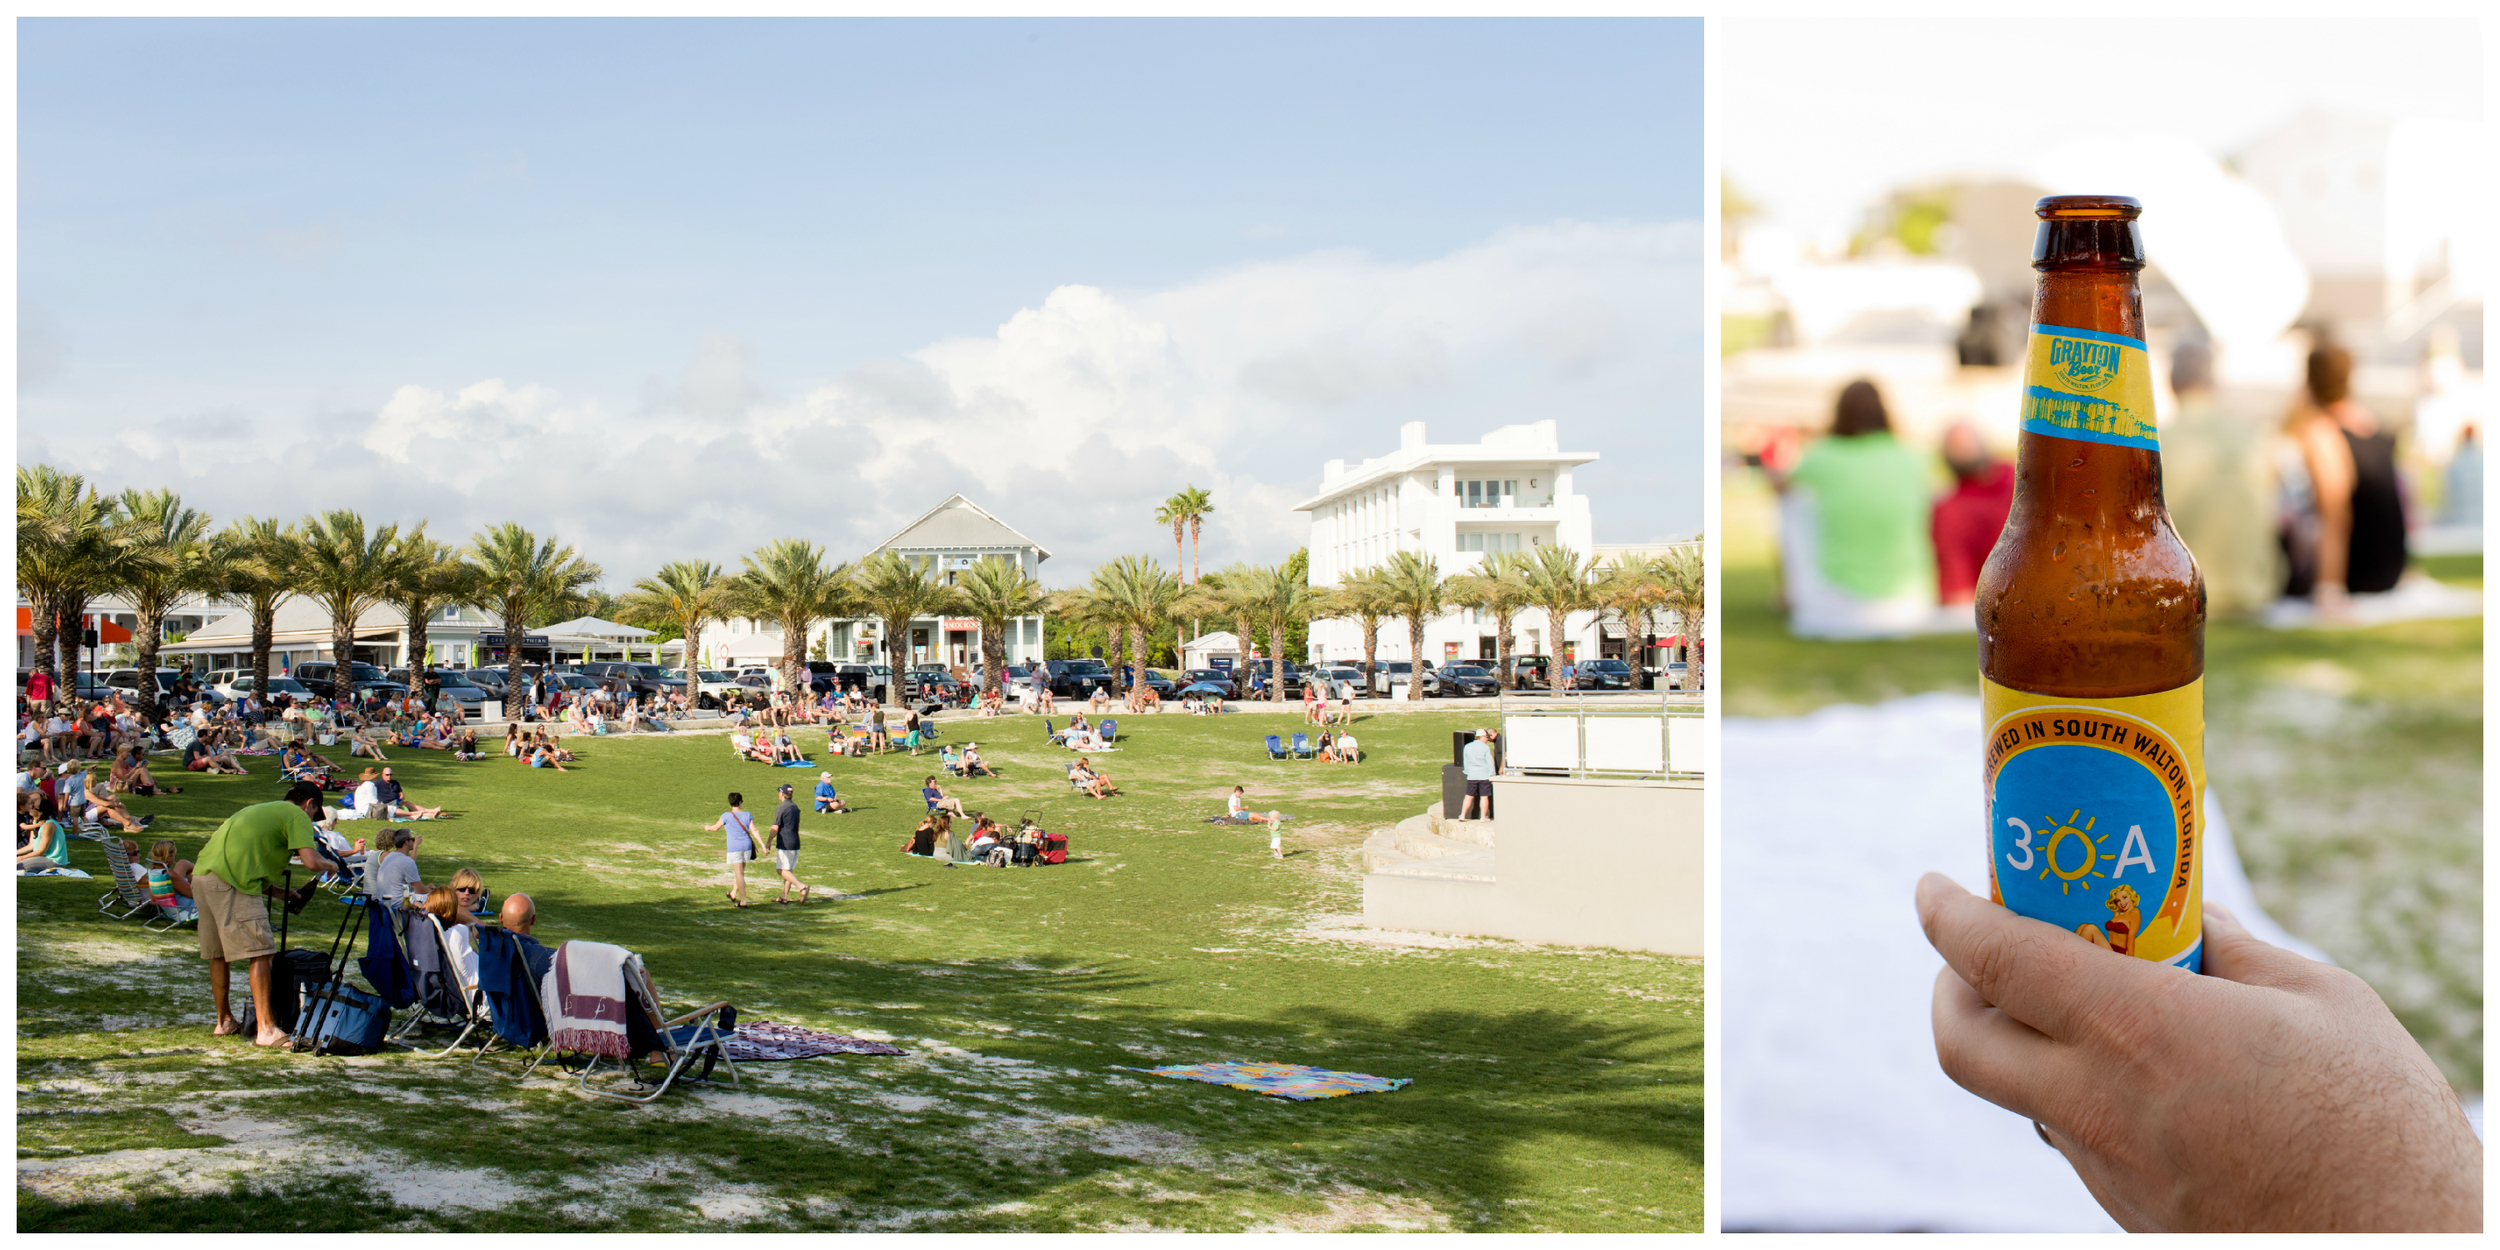 Jazz on the Lawn in Seaside, Florida with 30A beer